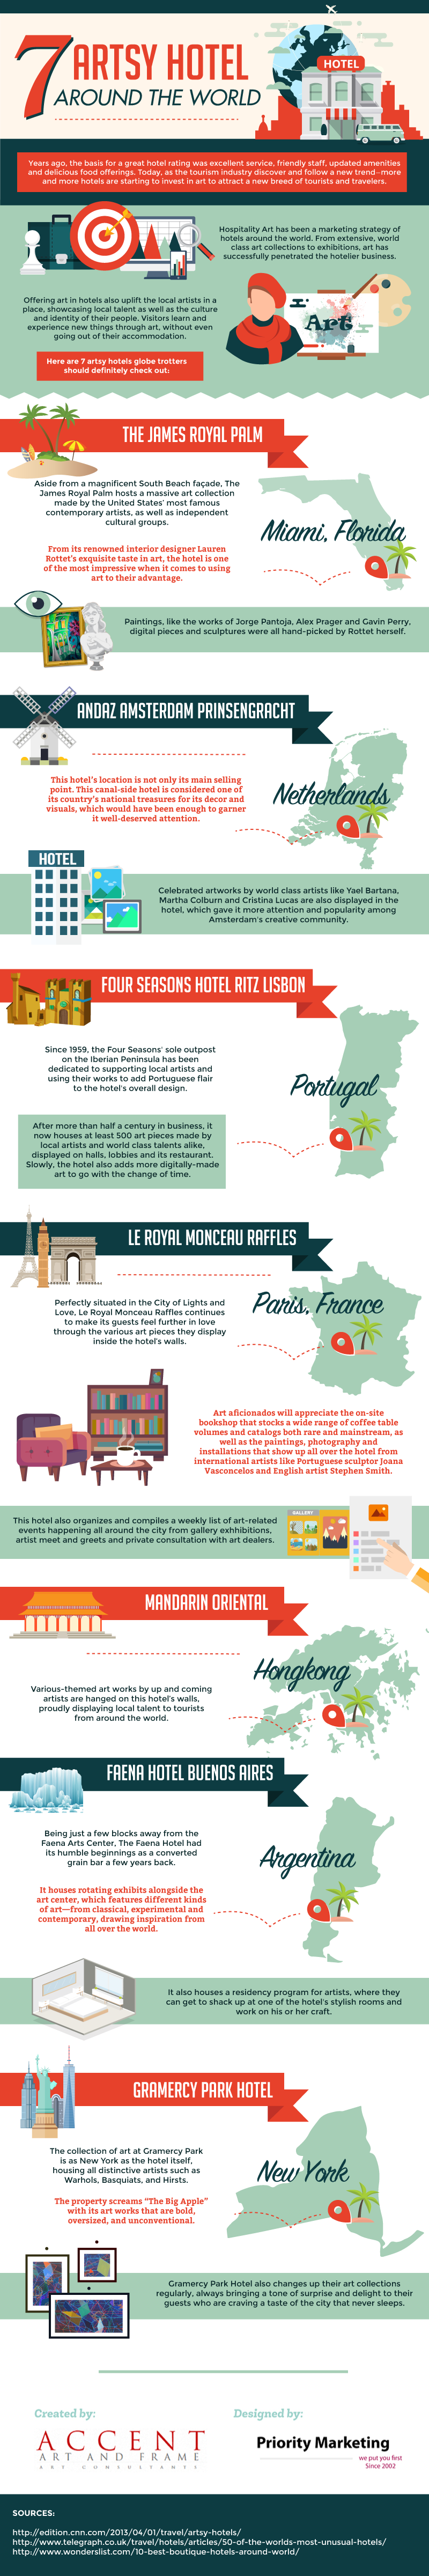 7 Artsy Hotels Around The World #infographic